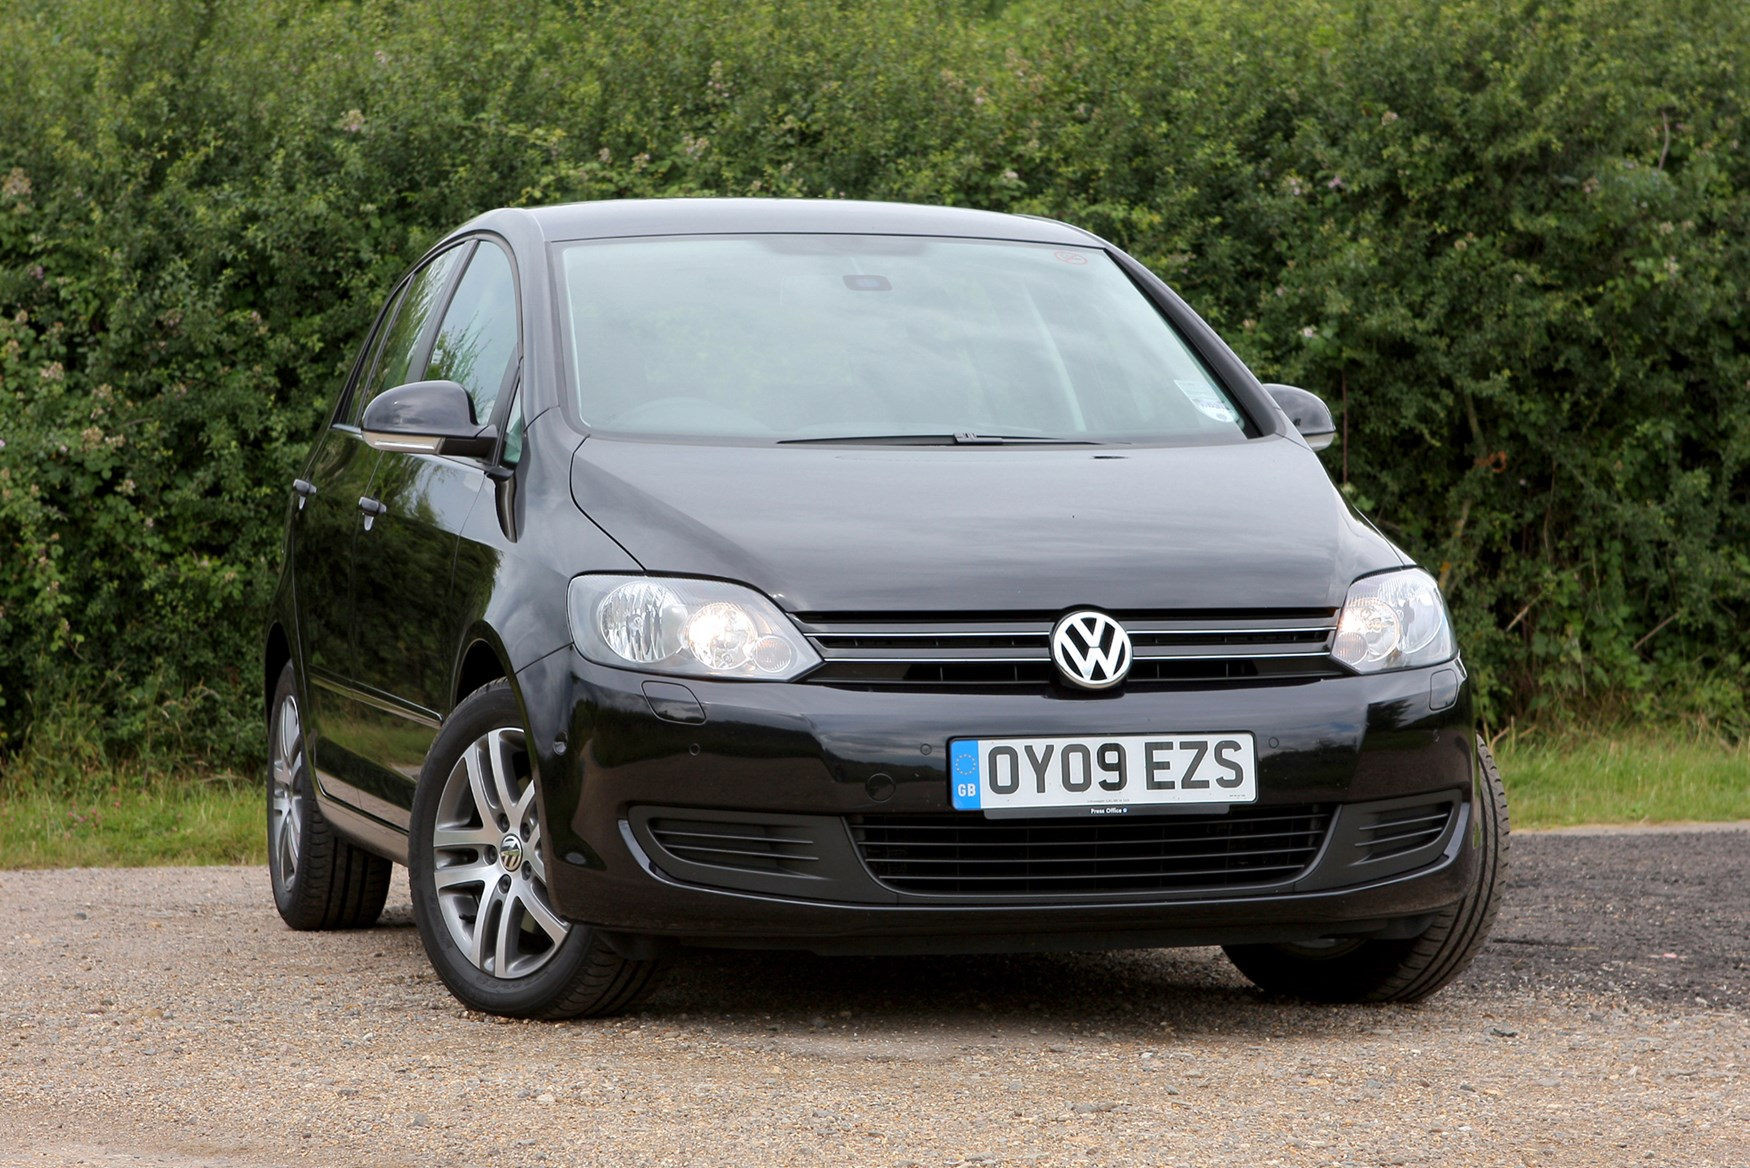 volkswagen golf plus 2009 2013 photos parkers. Black Bedroom Furniture Sets. Home Design Ideas